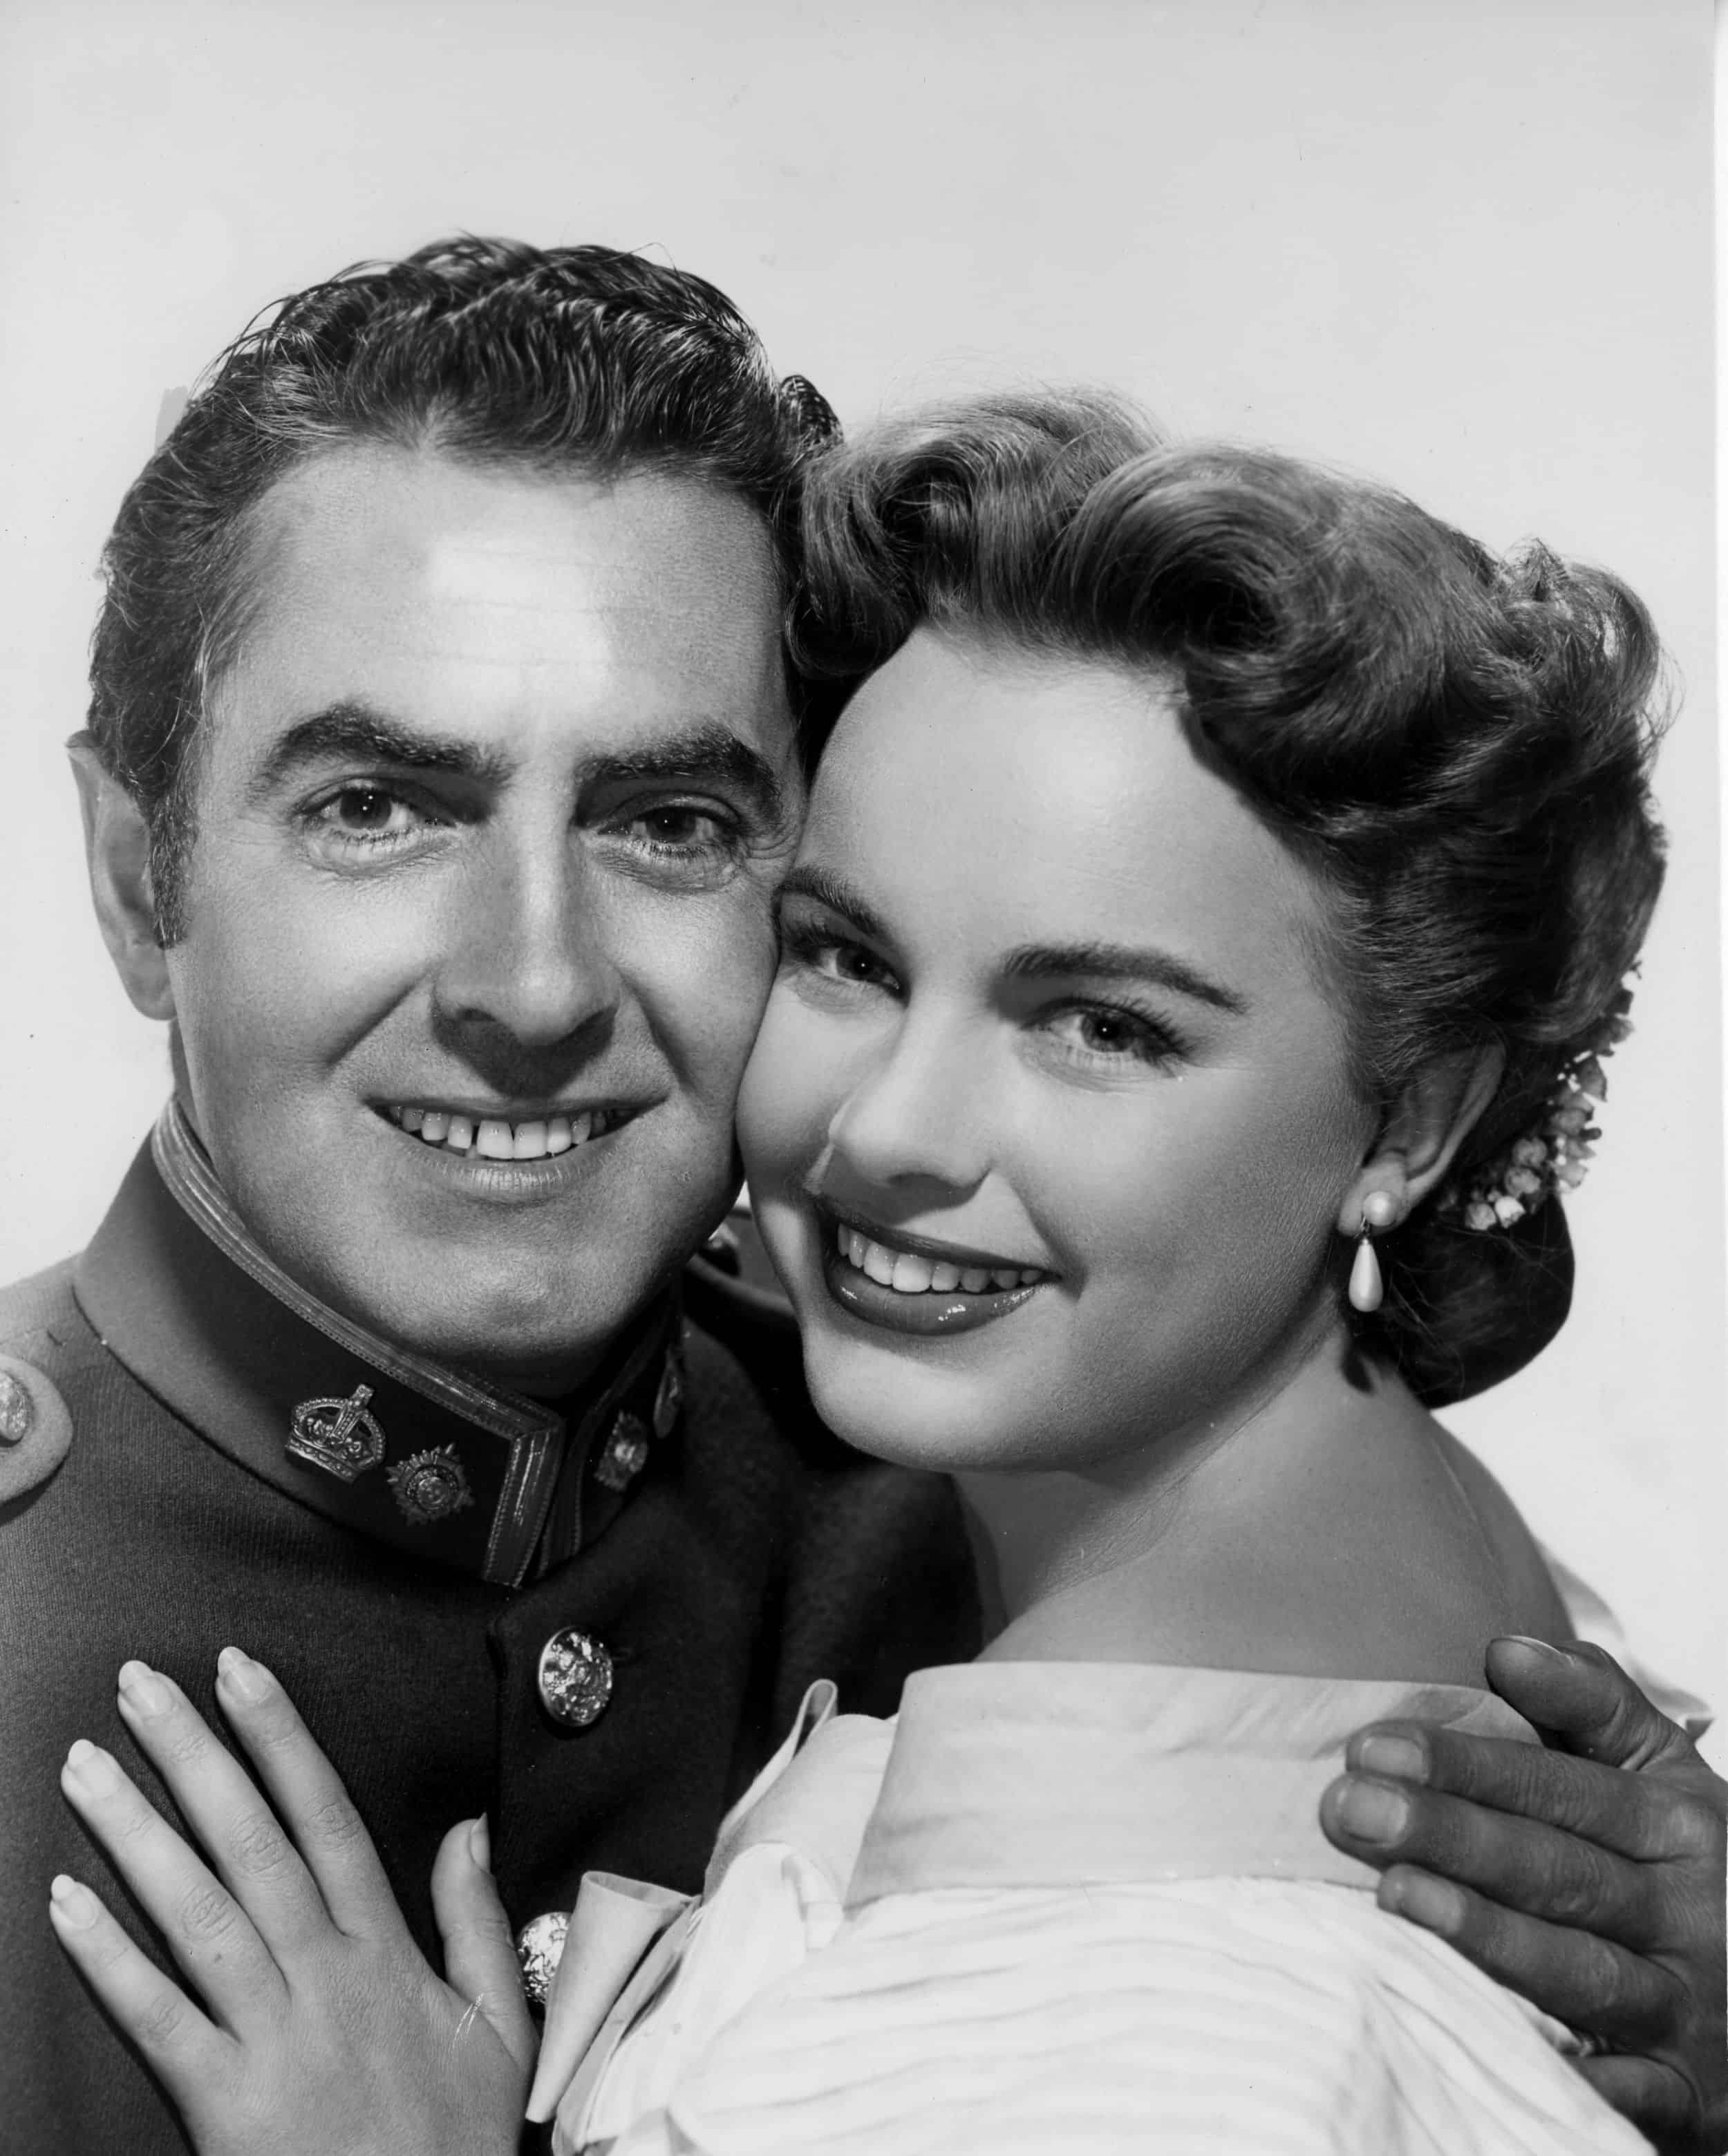 Tyrone Power and Terry Moore starred in 1953's King of the Khyber Rifles - Twentieth Century Fox